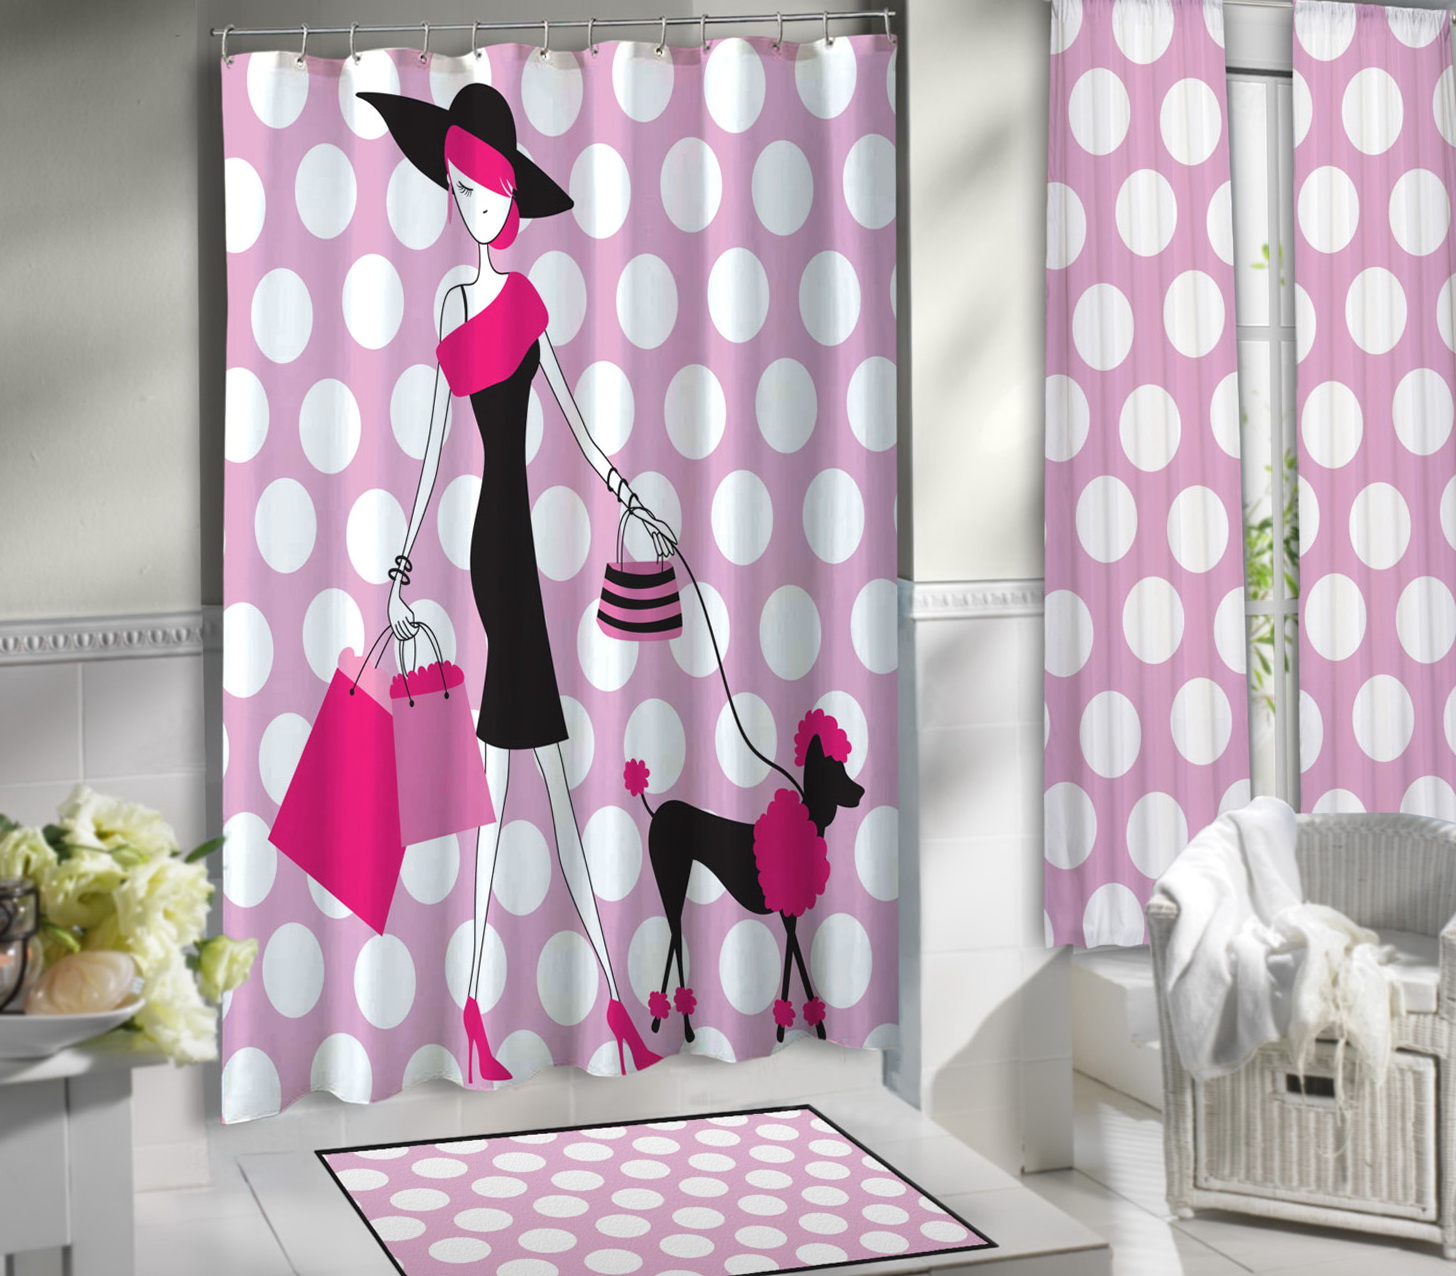 Pink Polka Dot Shower Curtains